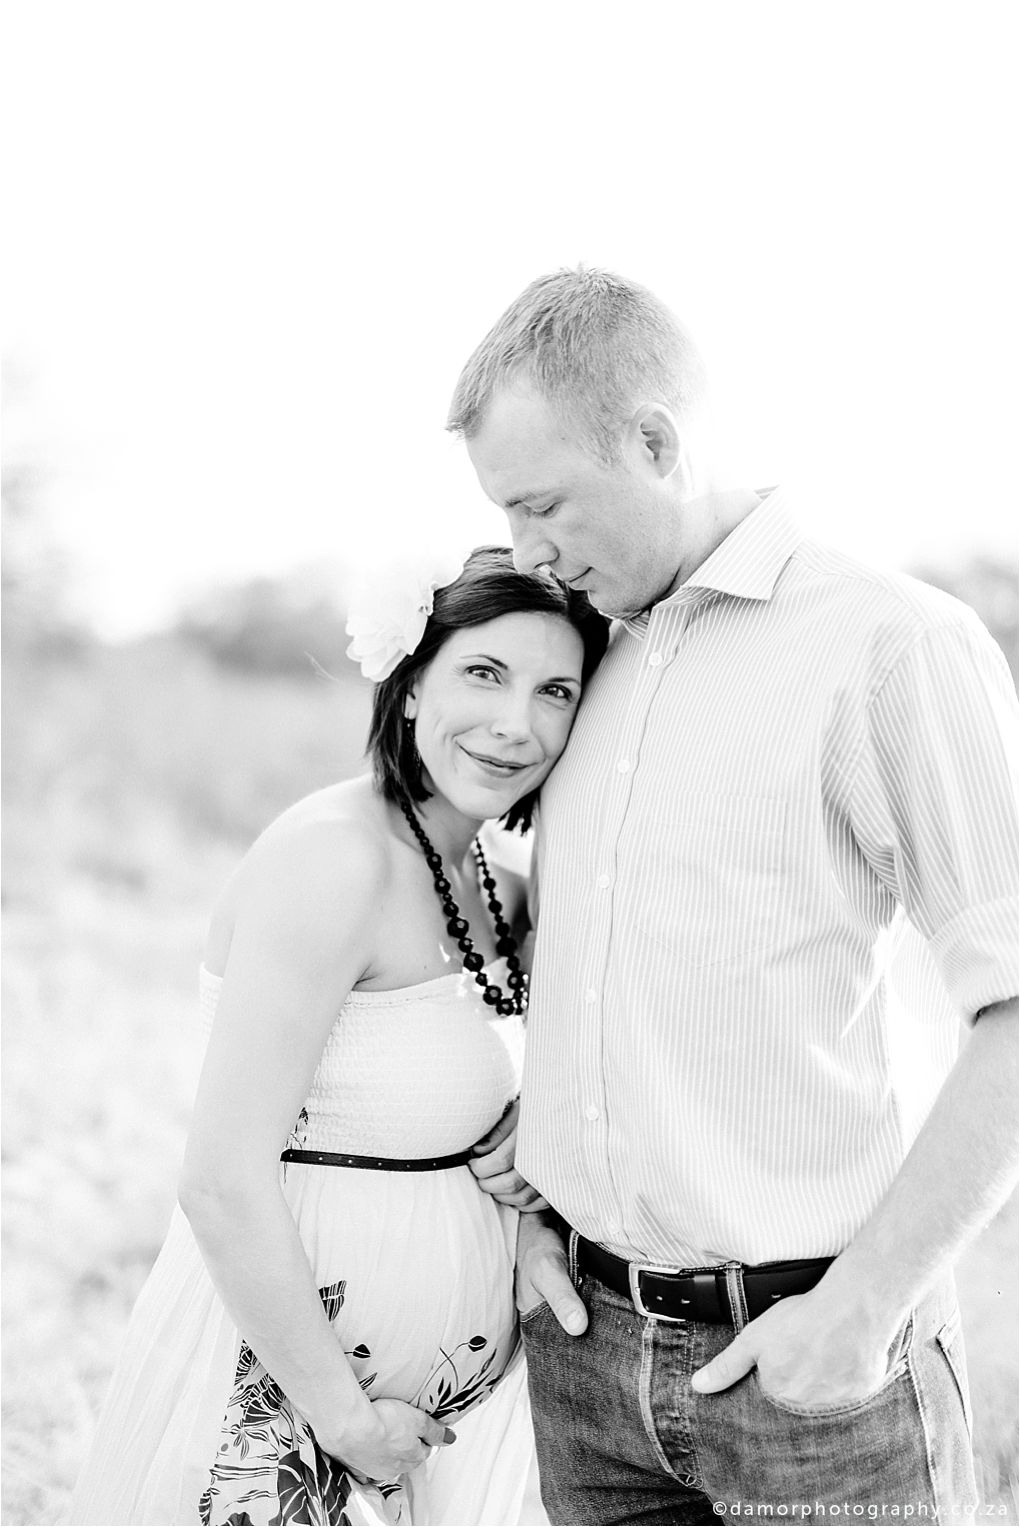 D'Amor Photography - Pretoria Maternity Photography 09